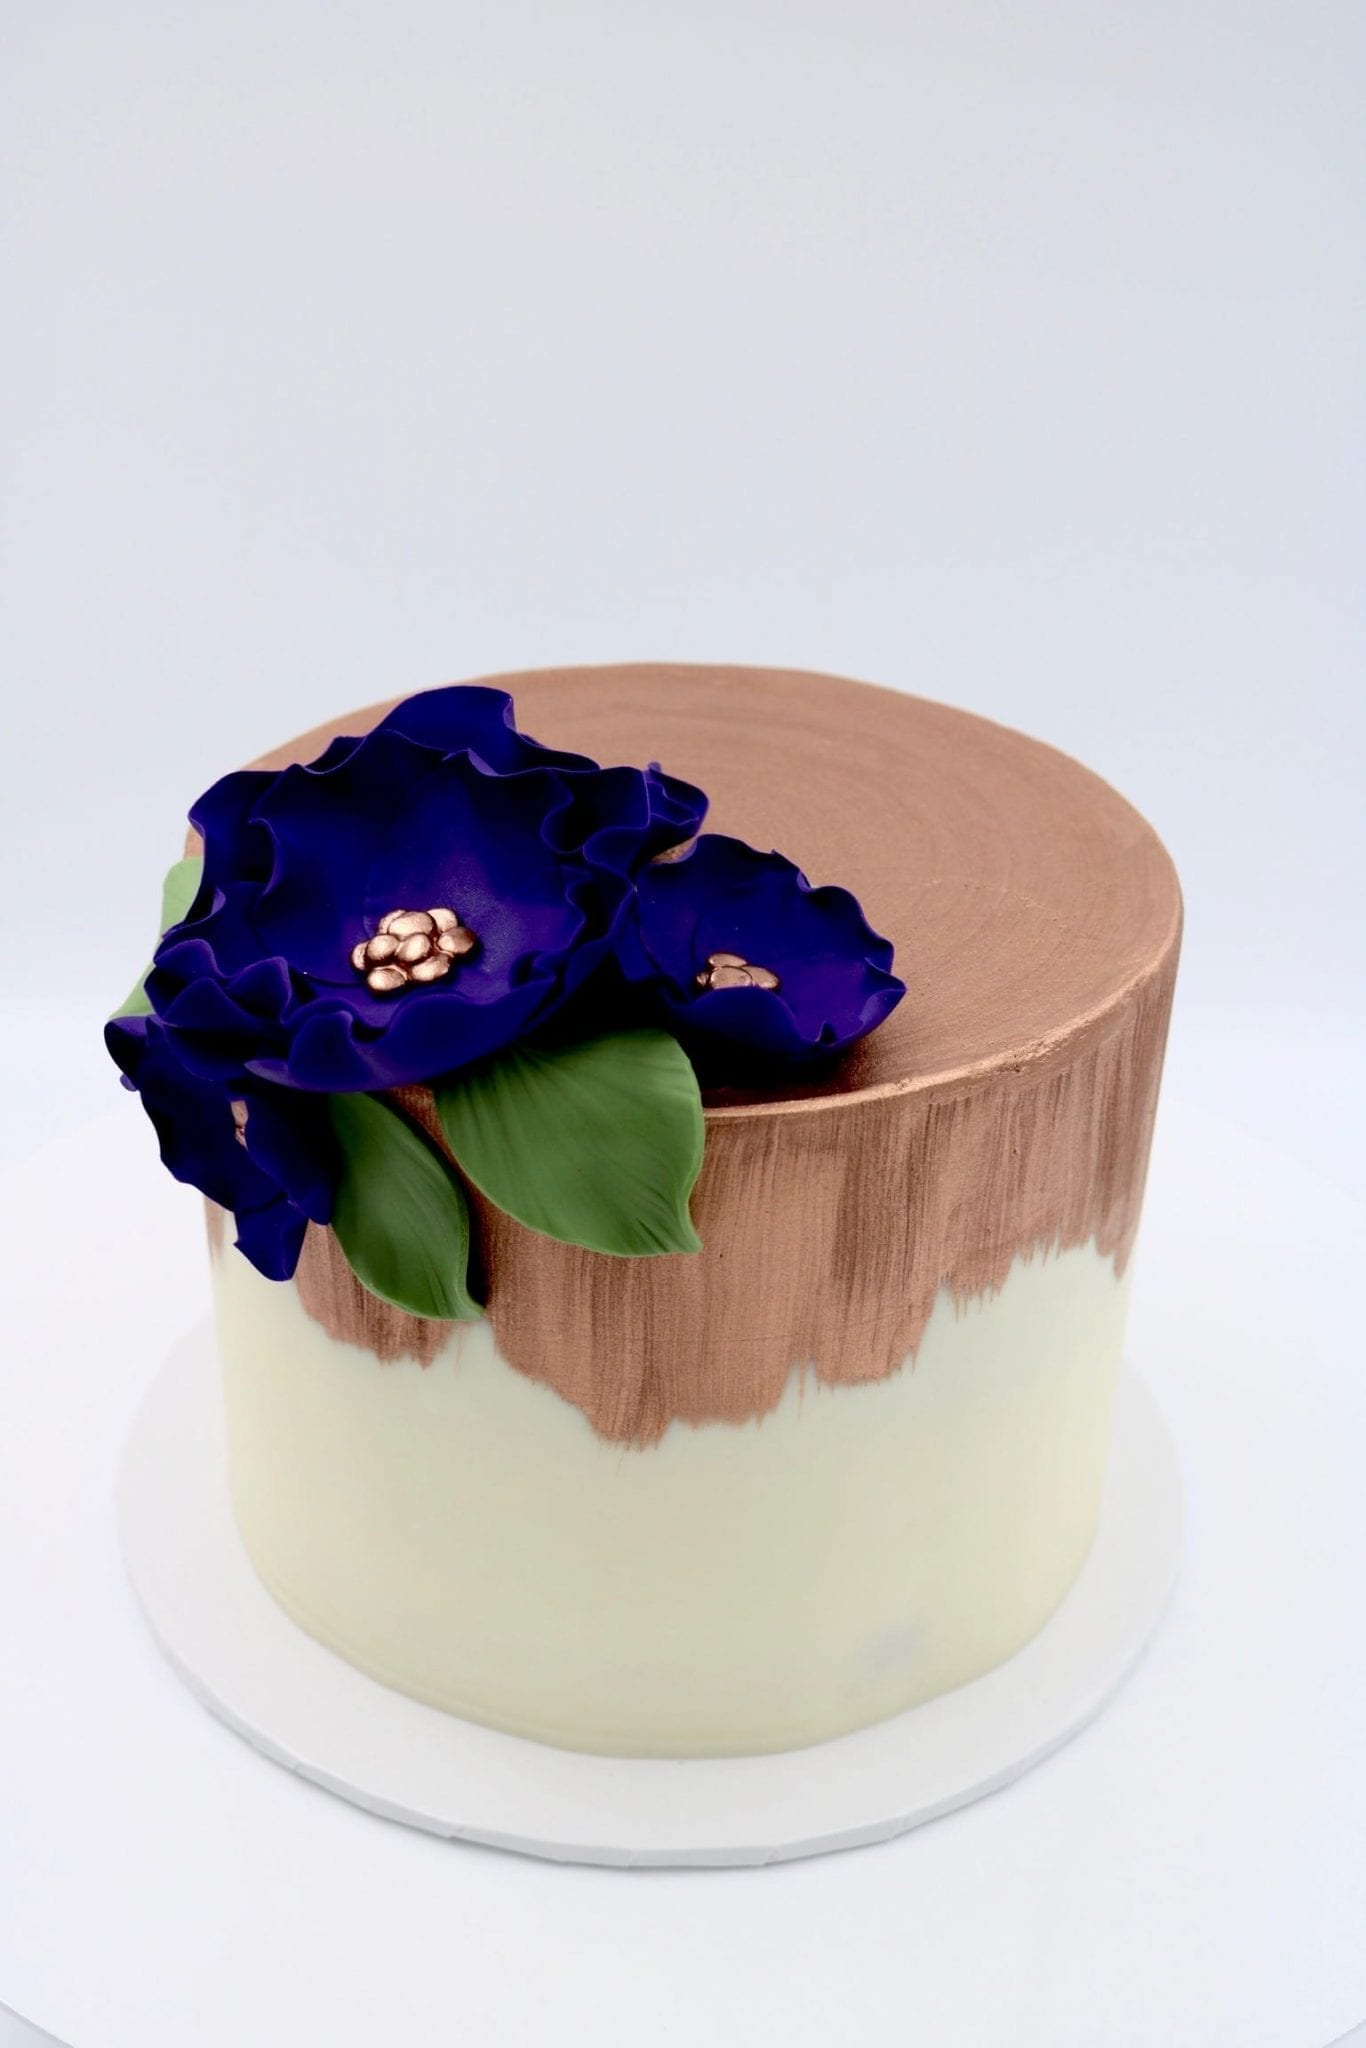 White Cake Brushed with Rose Gold and Plum Flowers | 3 Sweet Girls Cakery